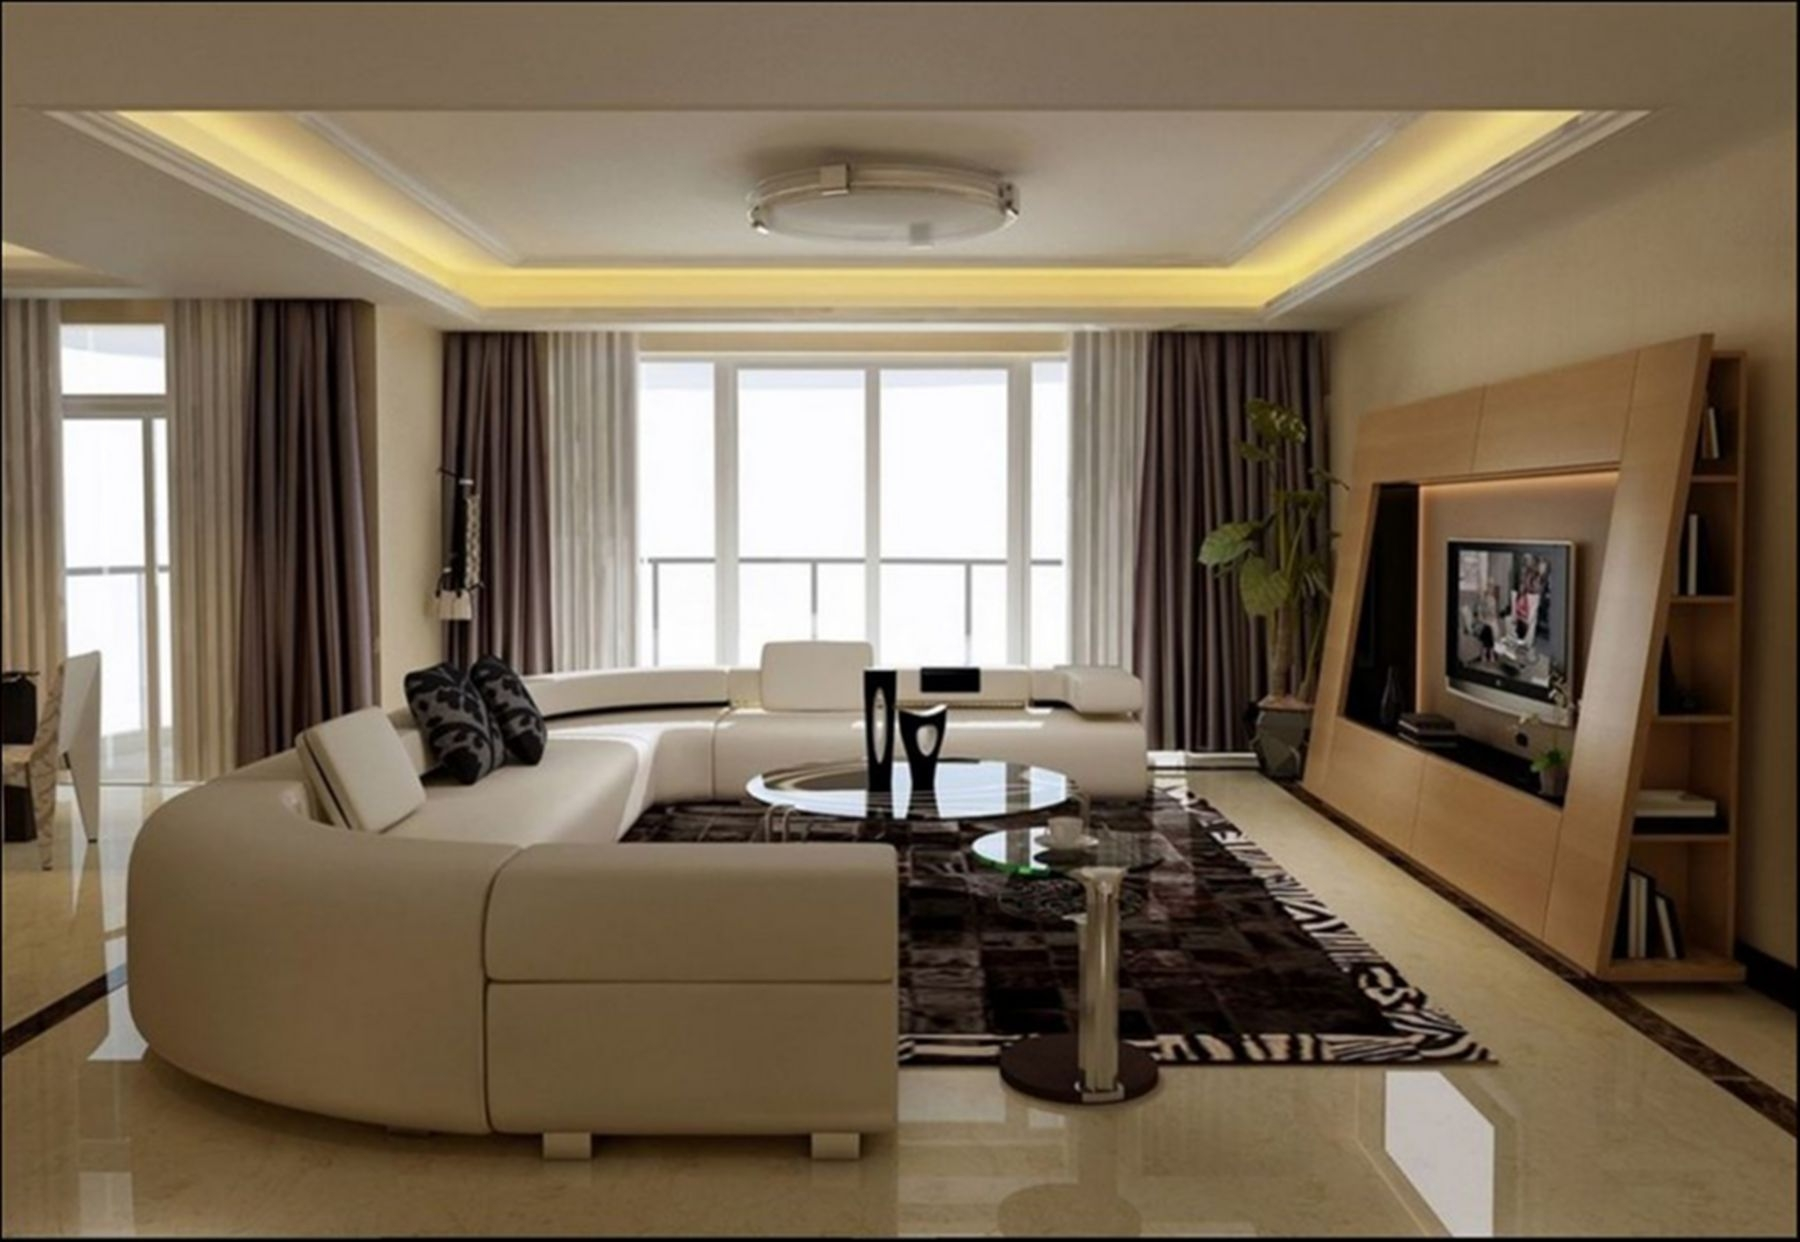 Majestic 12 Extraordinary Tv Room Design Idea For Comfort When Watching Without Having To Ask